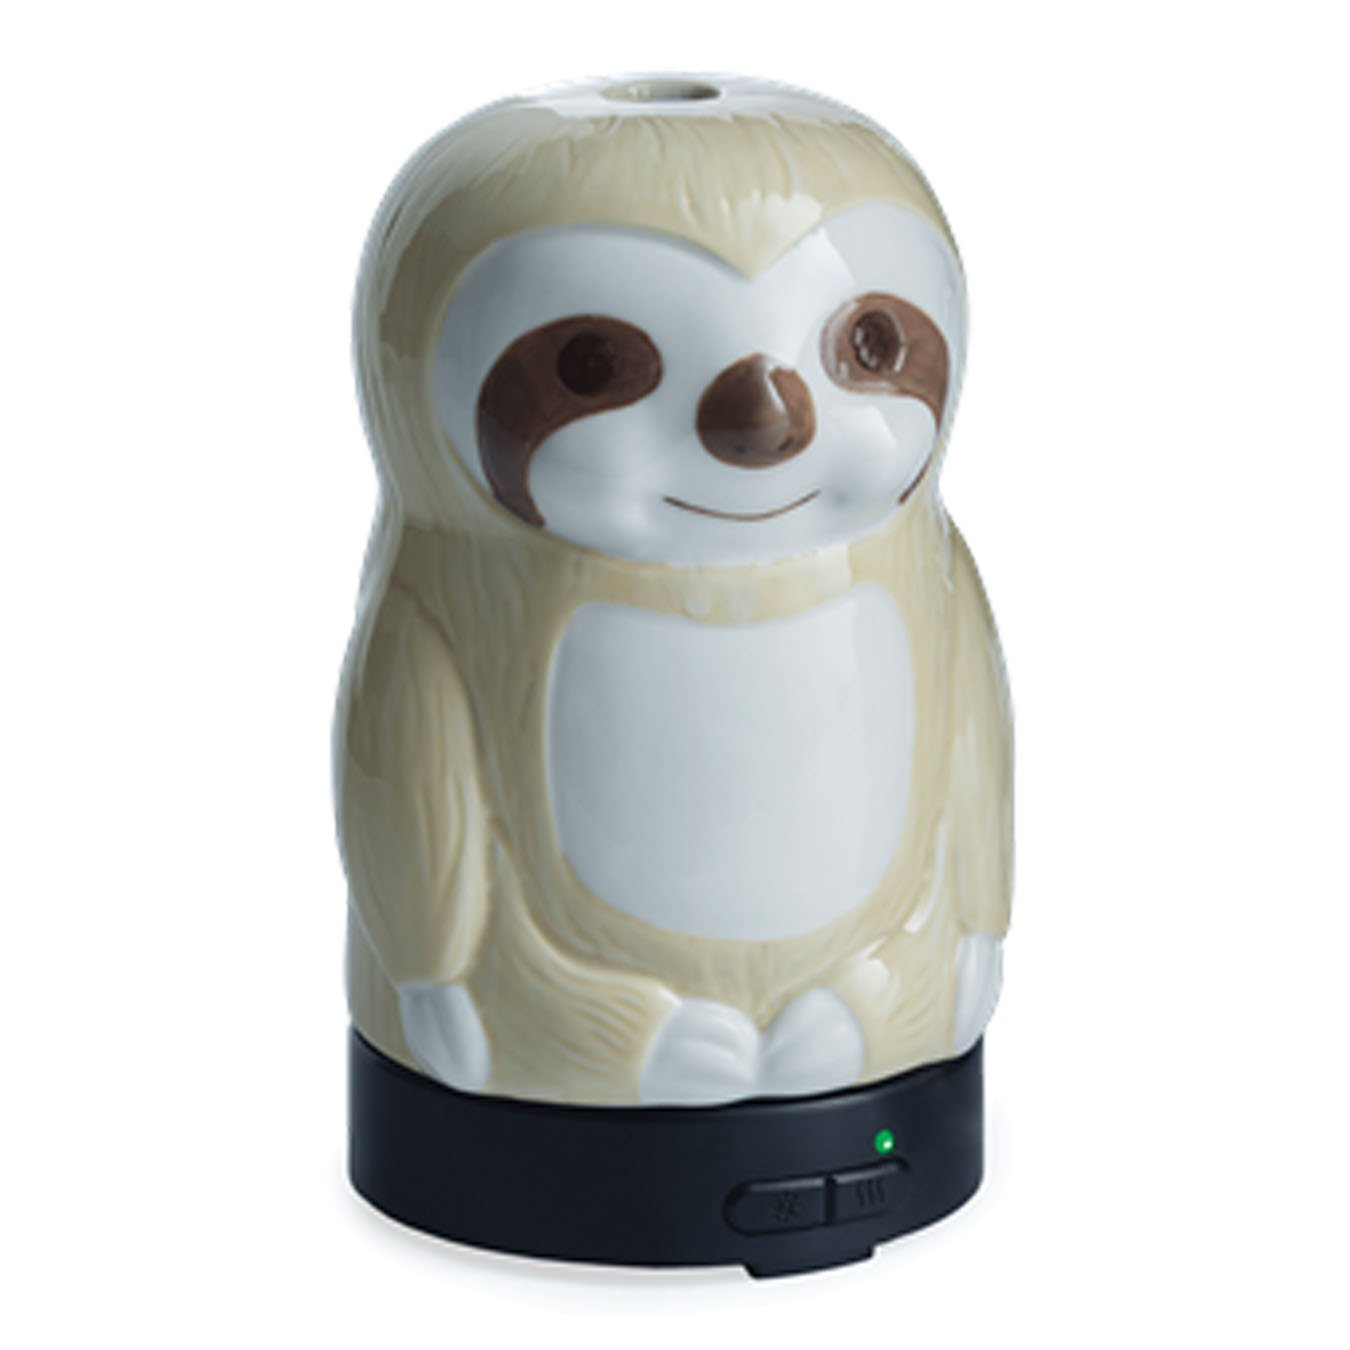 Sloth Ultrasonic Essential Oil Diffuser by Airomé